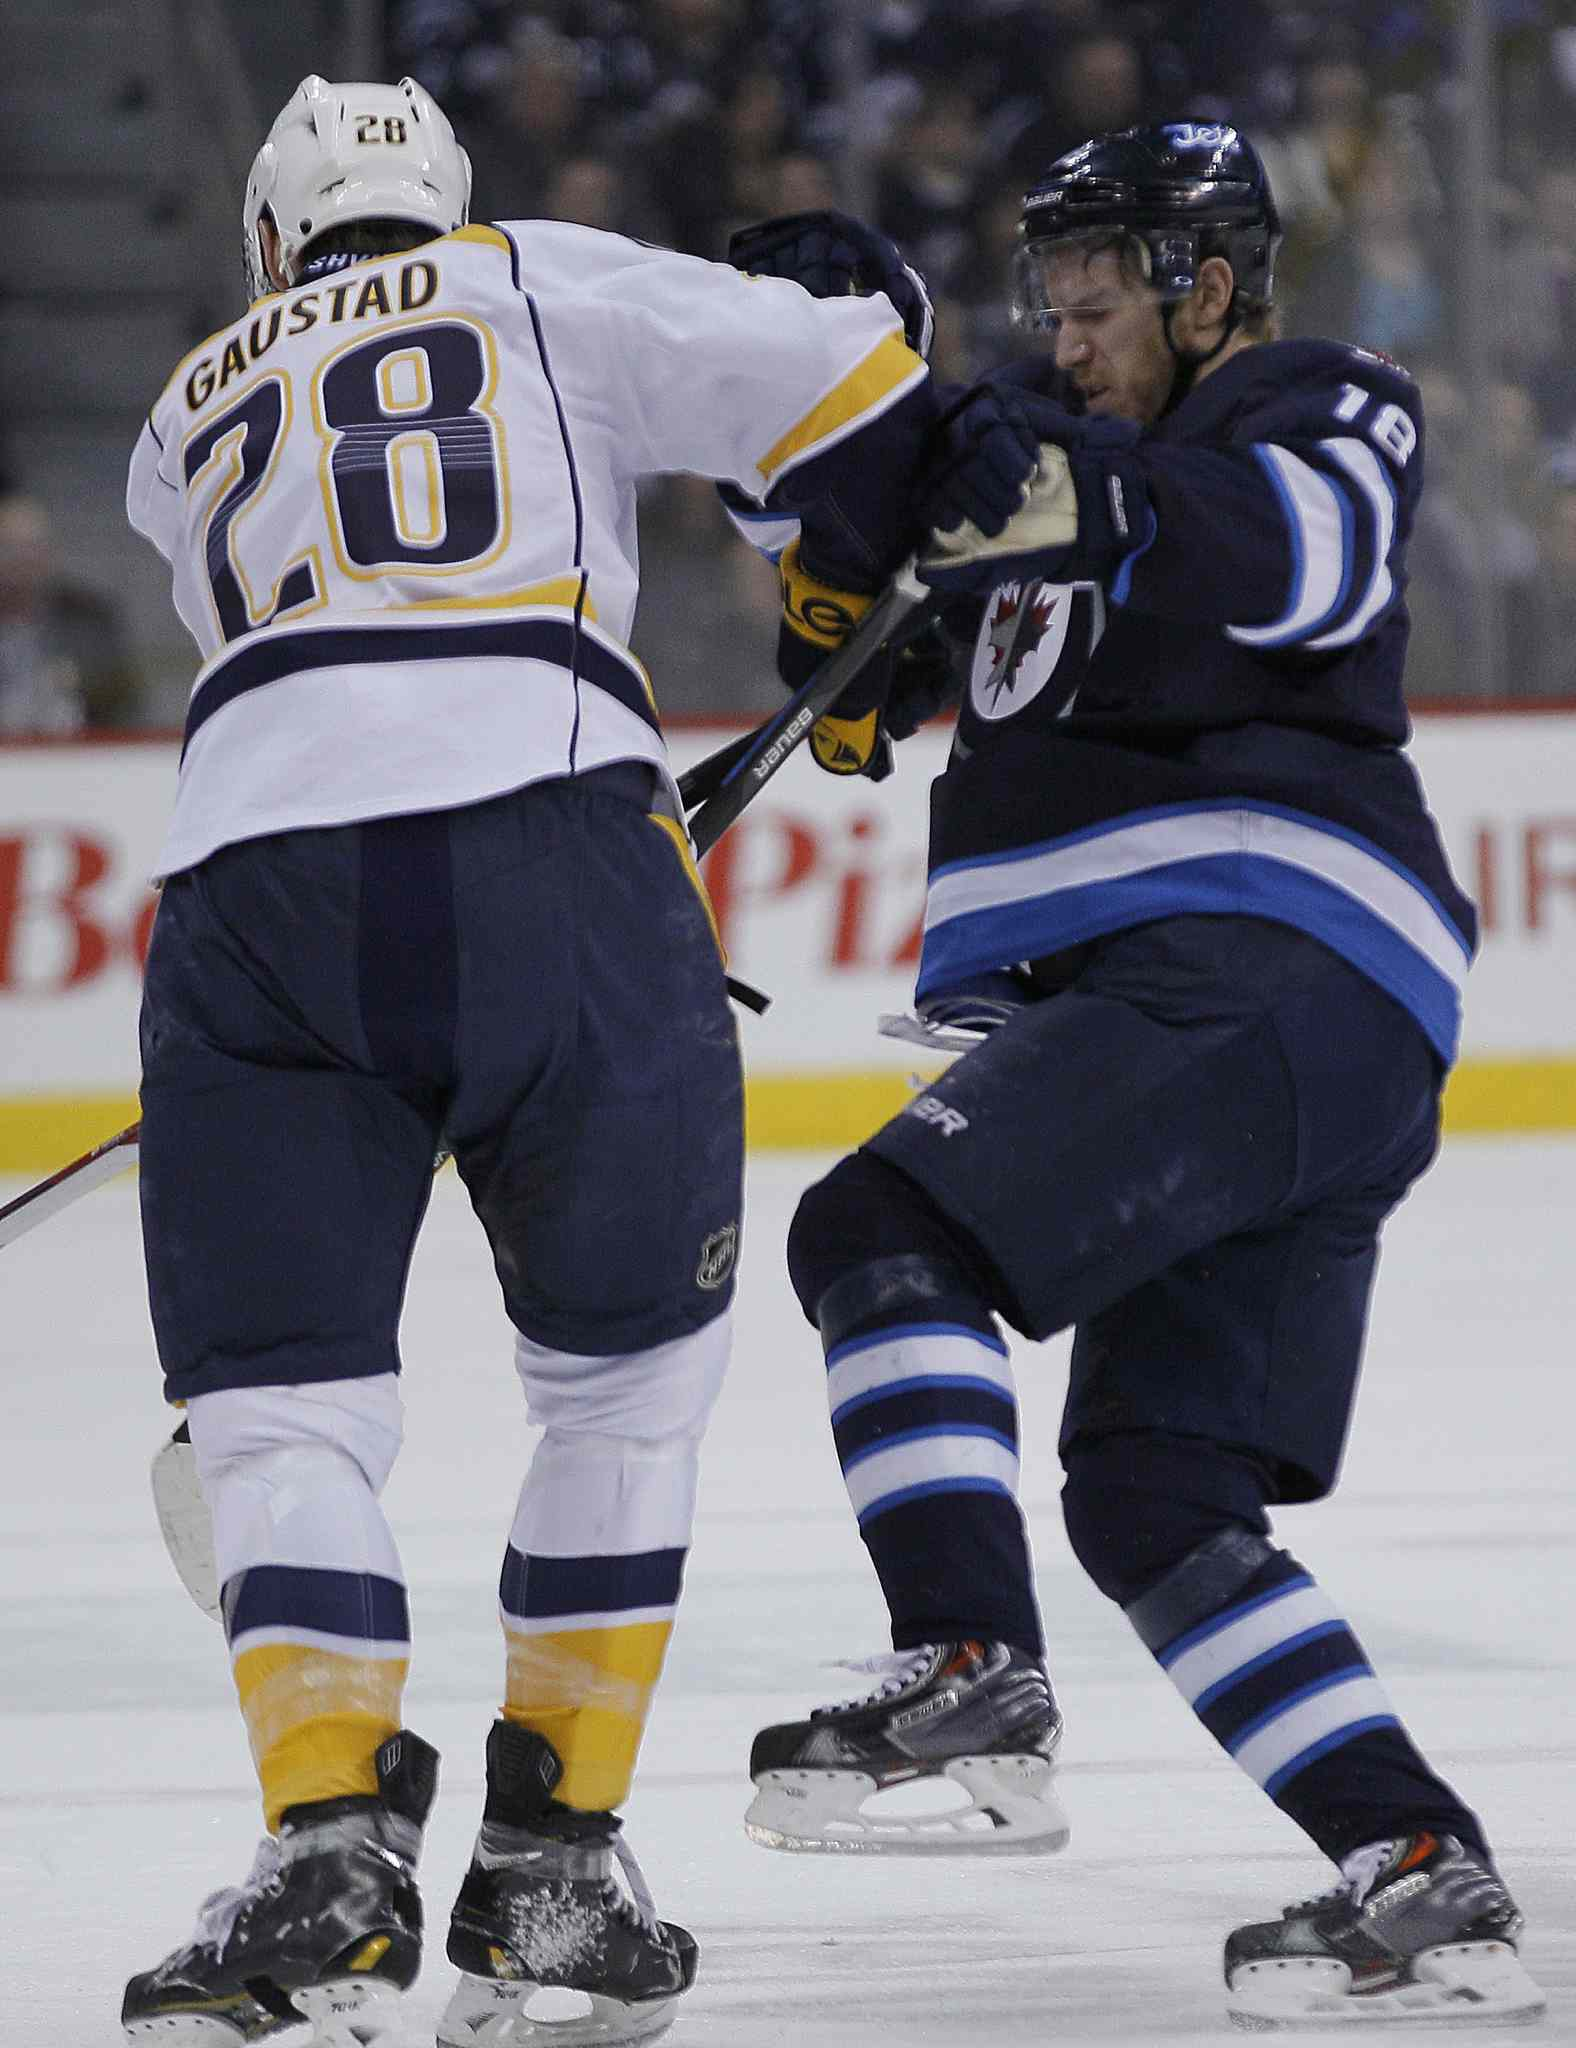 Winnipeg Jets' Bryan Little (18) gets checked by Nashville Predators' Paul Gaustad (28) during second period NHL action in Winnipeg.